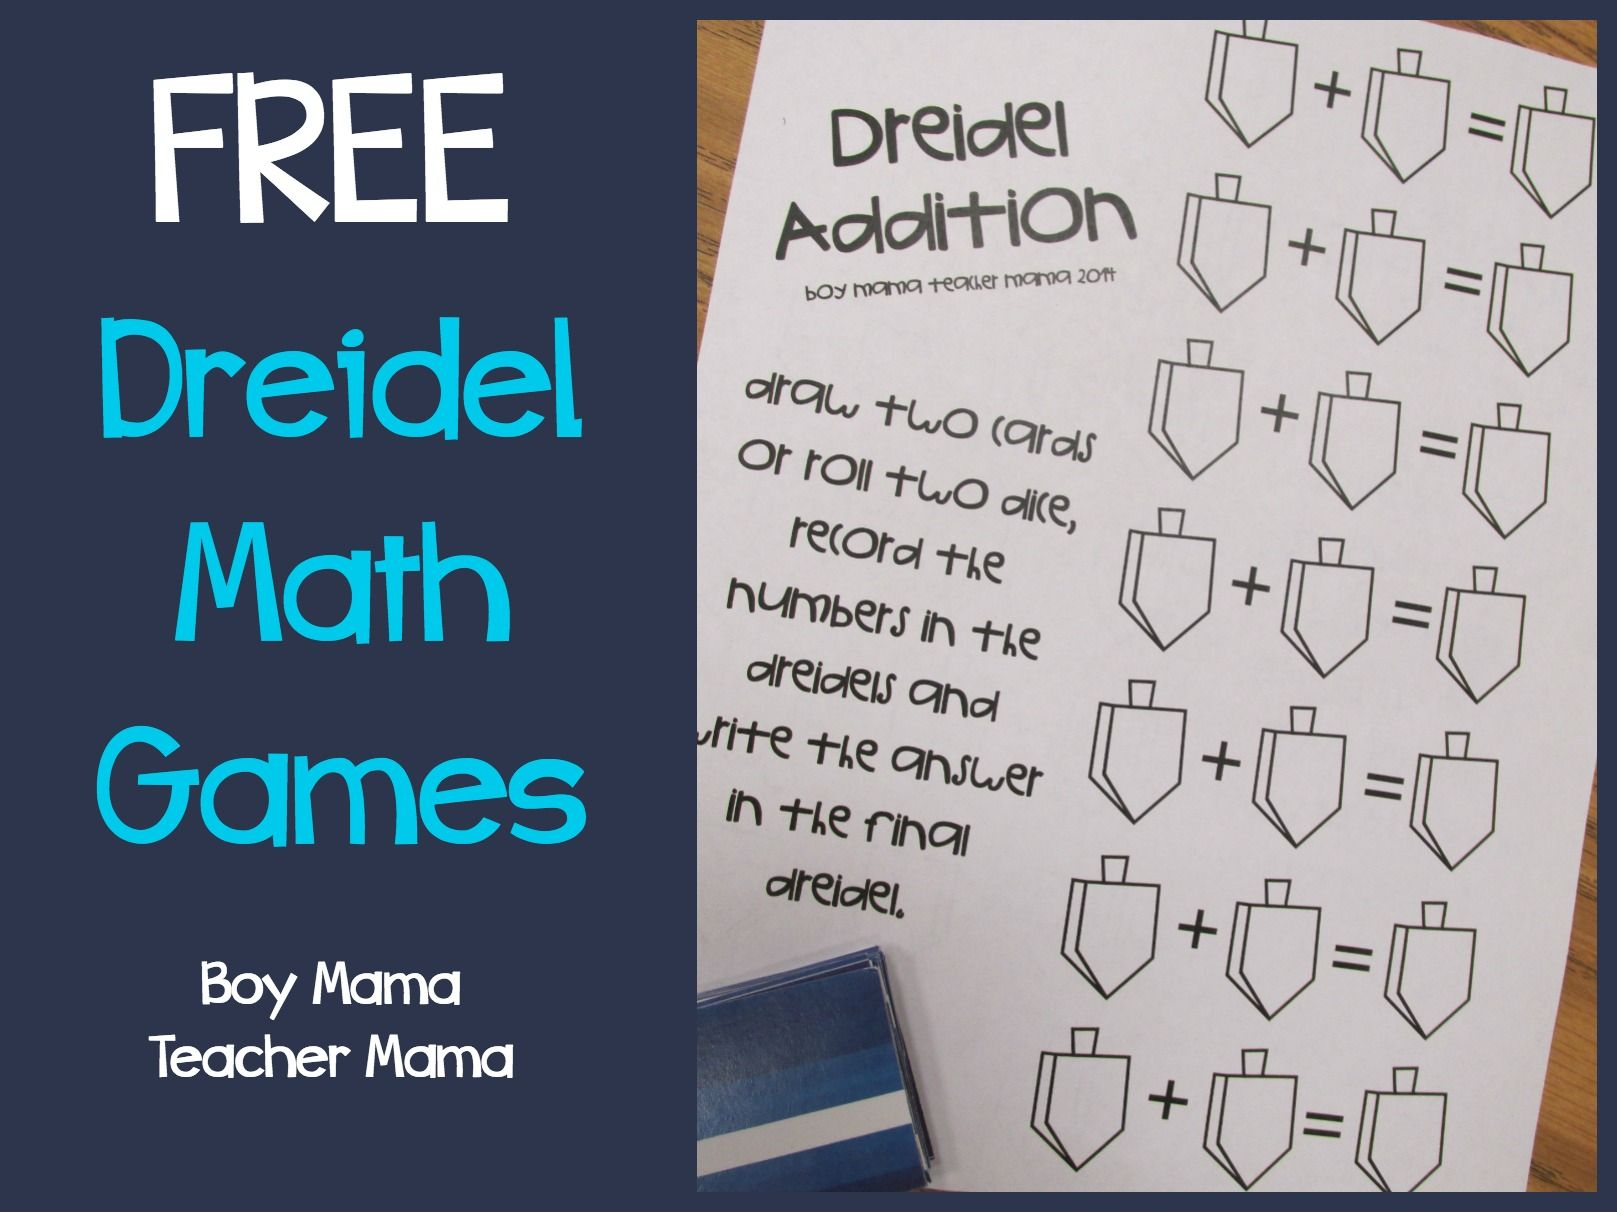 Teacher Mama Free Printable Dreidel Math Game After School Linky